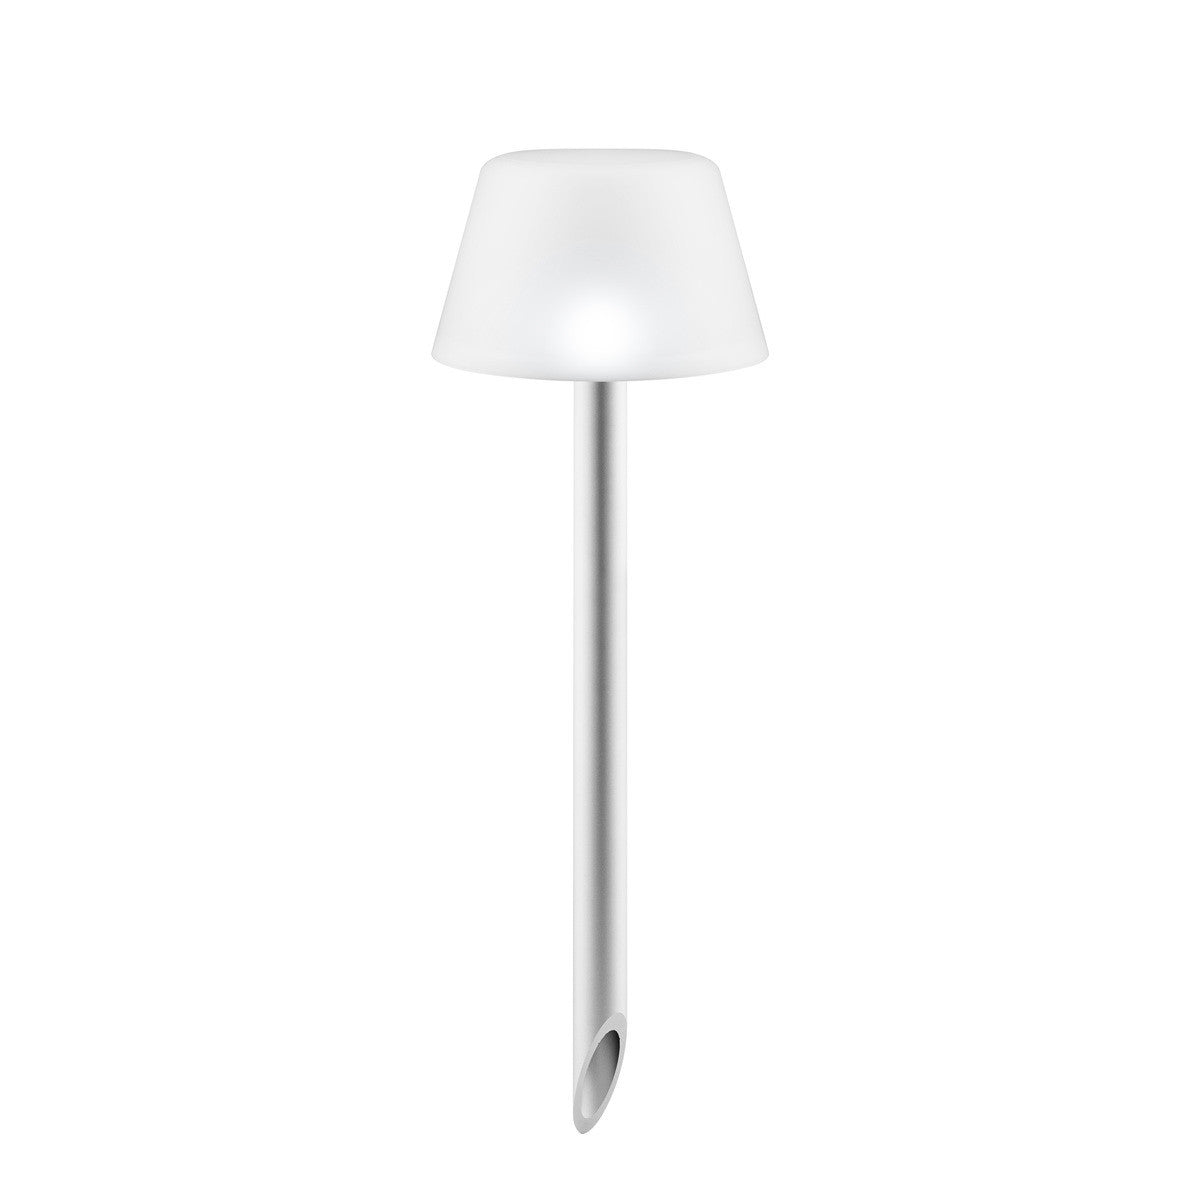 Eva Solo Sun Light Garden Spike Outdoor Lamp